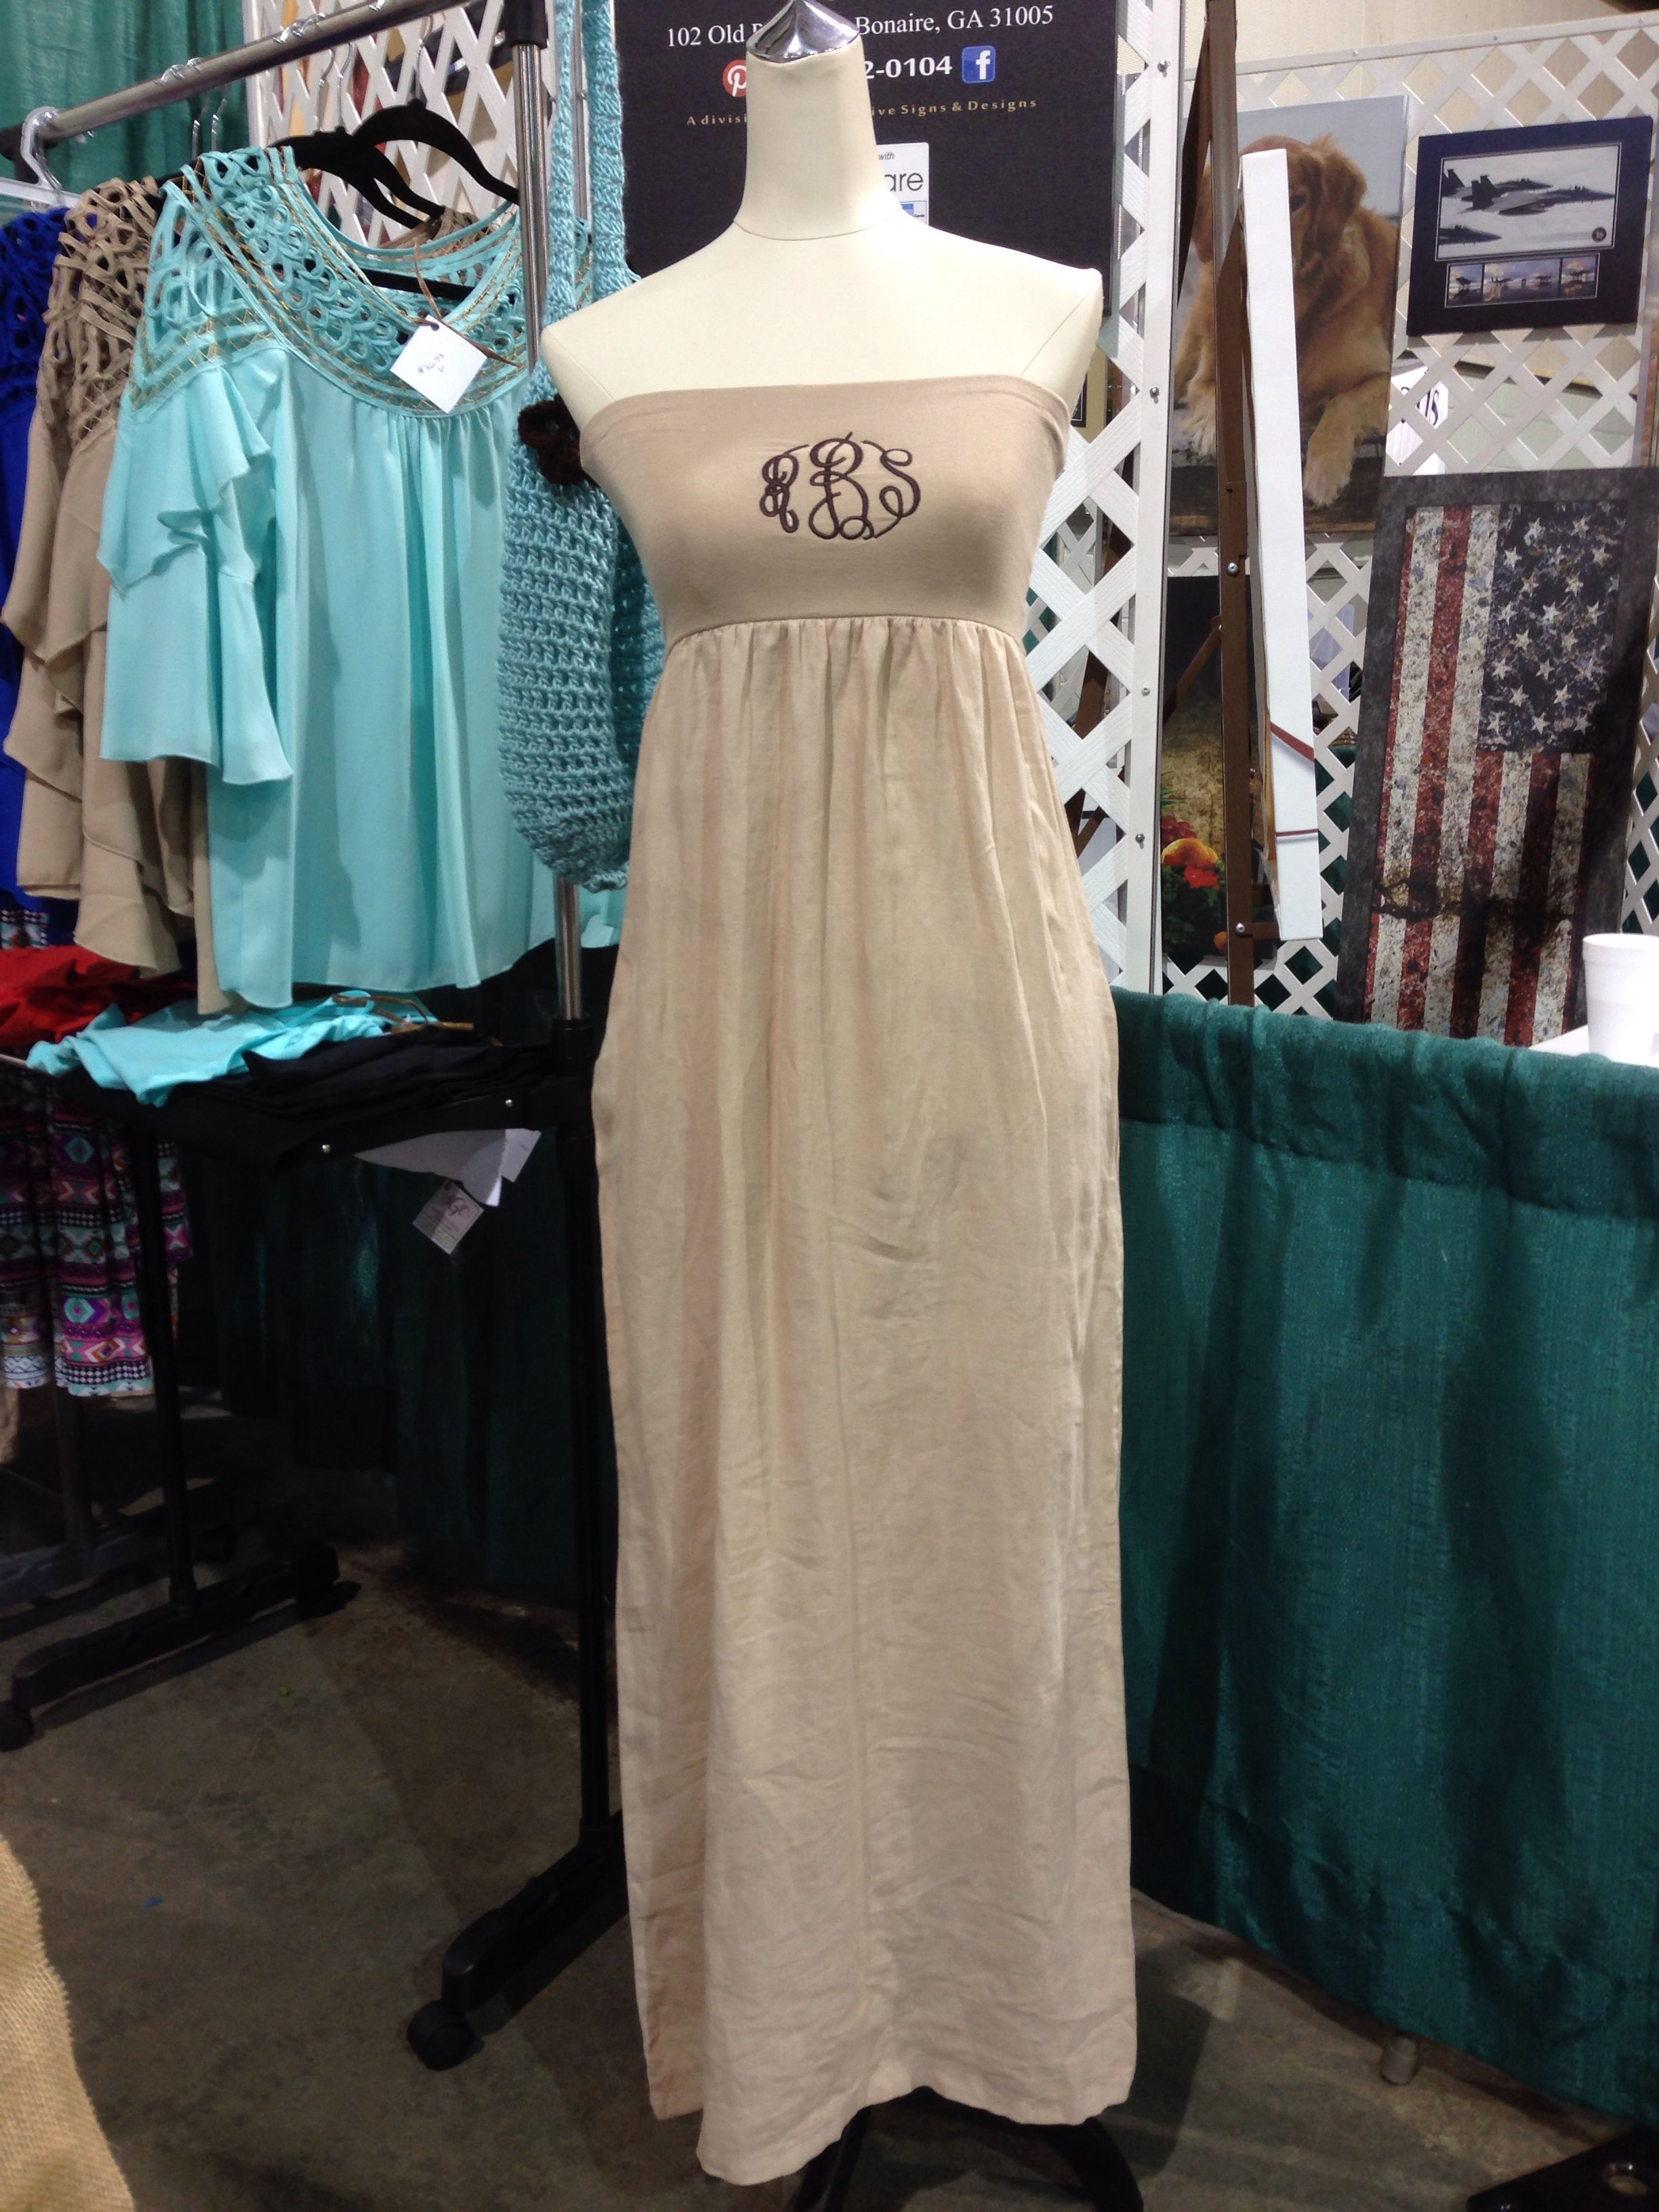 Monogrammed tube top maxi dress with pockets www.sgracec.com